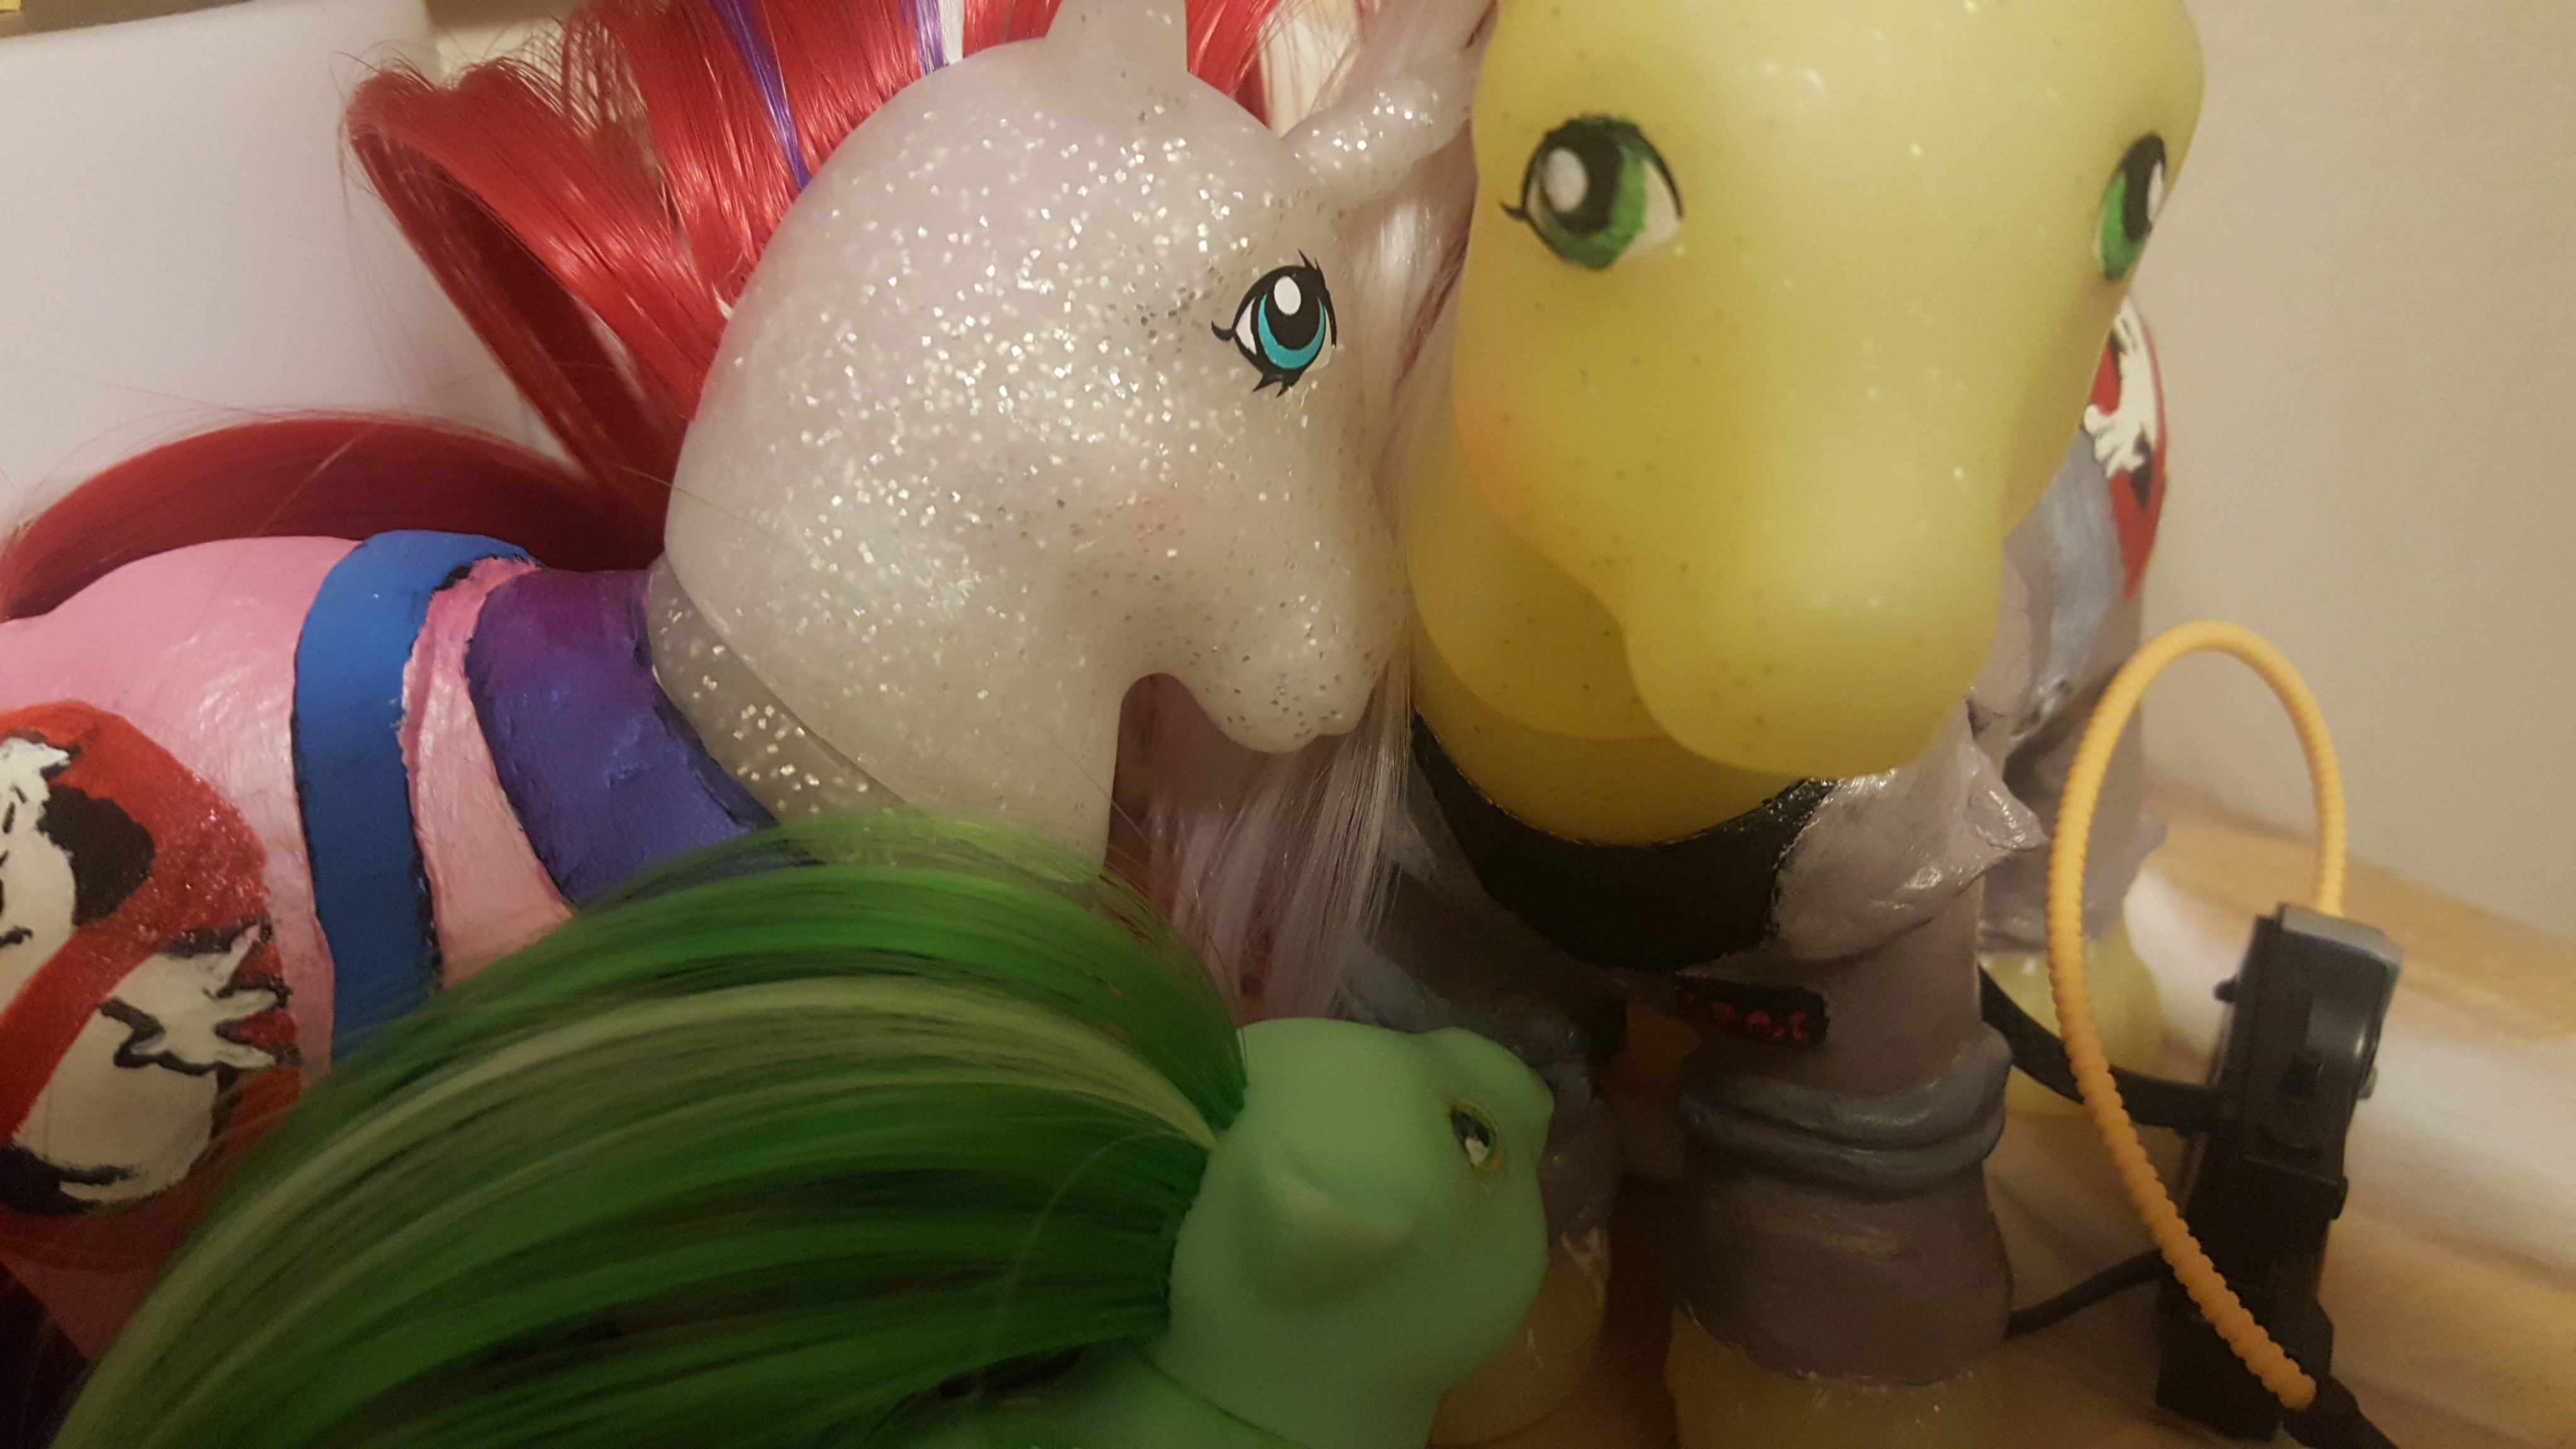 Janine (white glitter unicorn with blue eyes, red hair and a pink and purple Ghostbusters jumpsuit) nuzzles Egon (yellow glitter pony with green eyes, white hair and a tan Ghostbusters jumpsuit) while Slimer looks up at them (green baby pony with green hair)